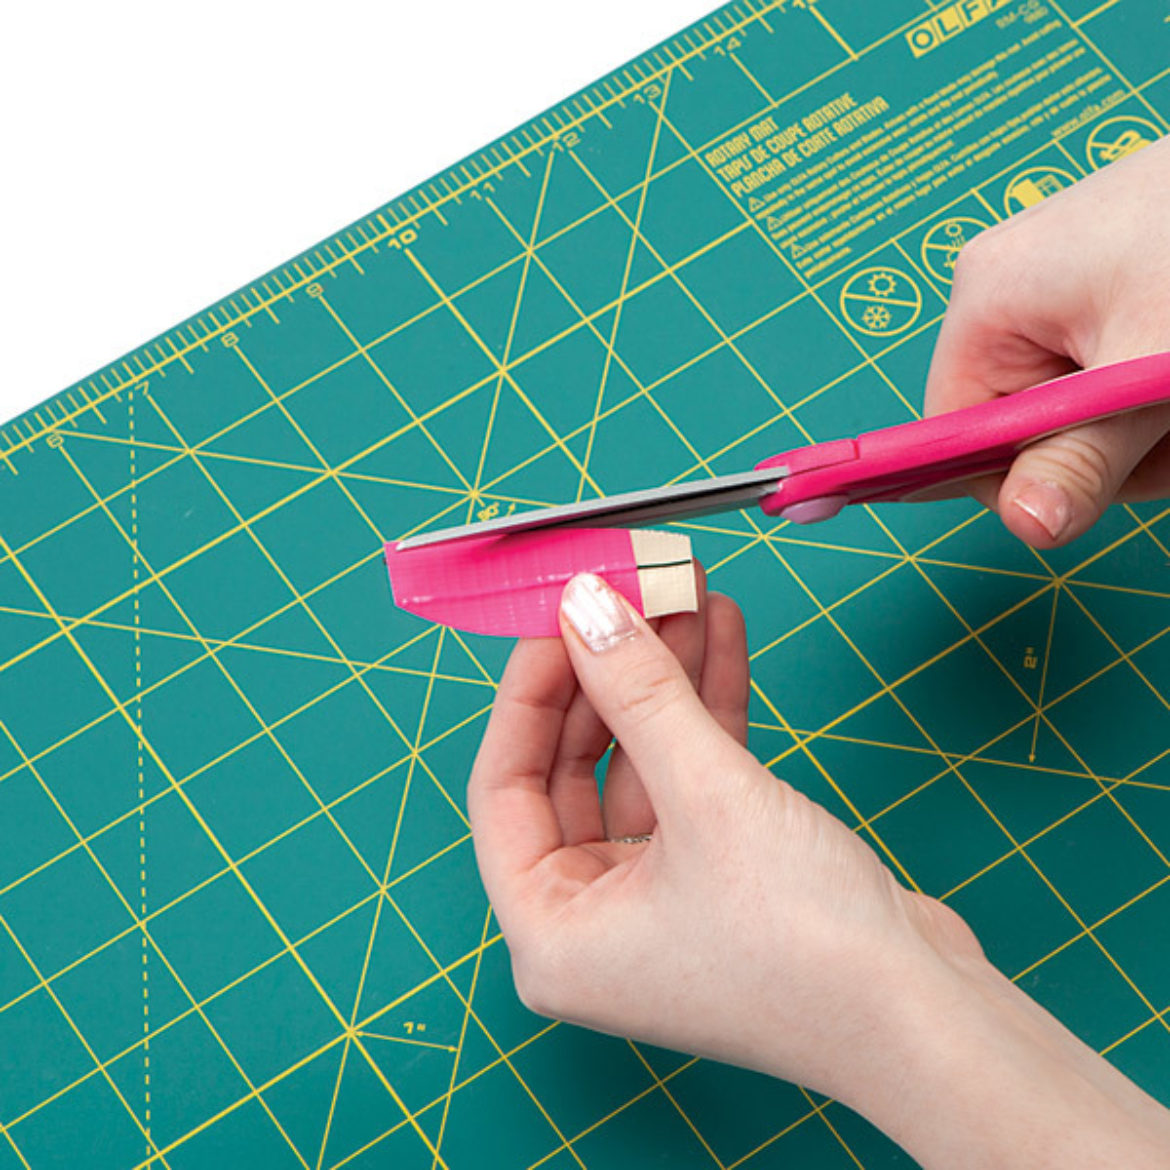 Trim the piece from the previous step into a daisy petal shape